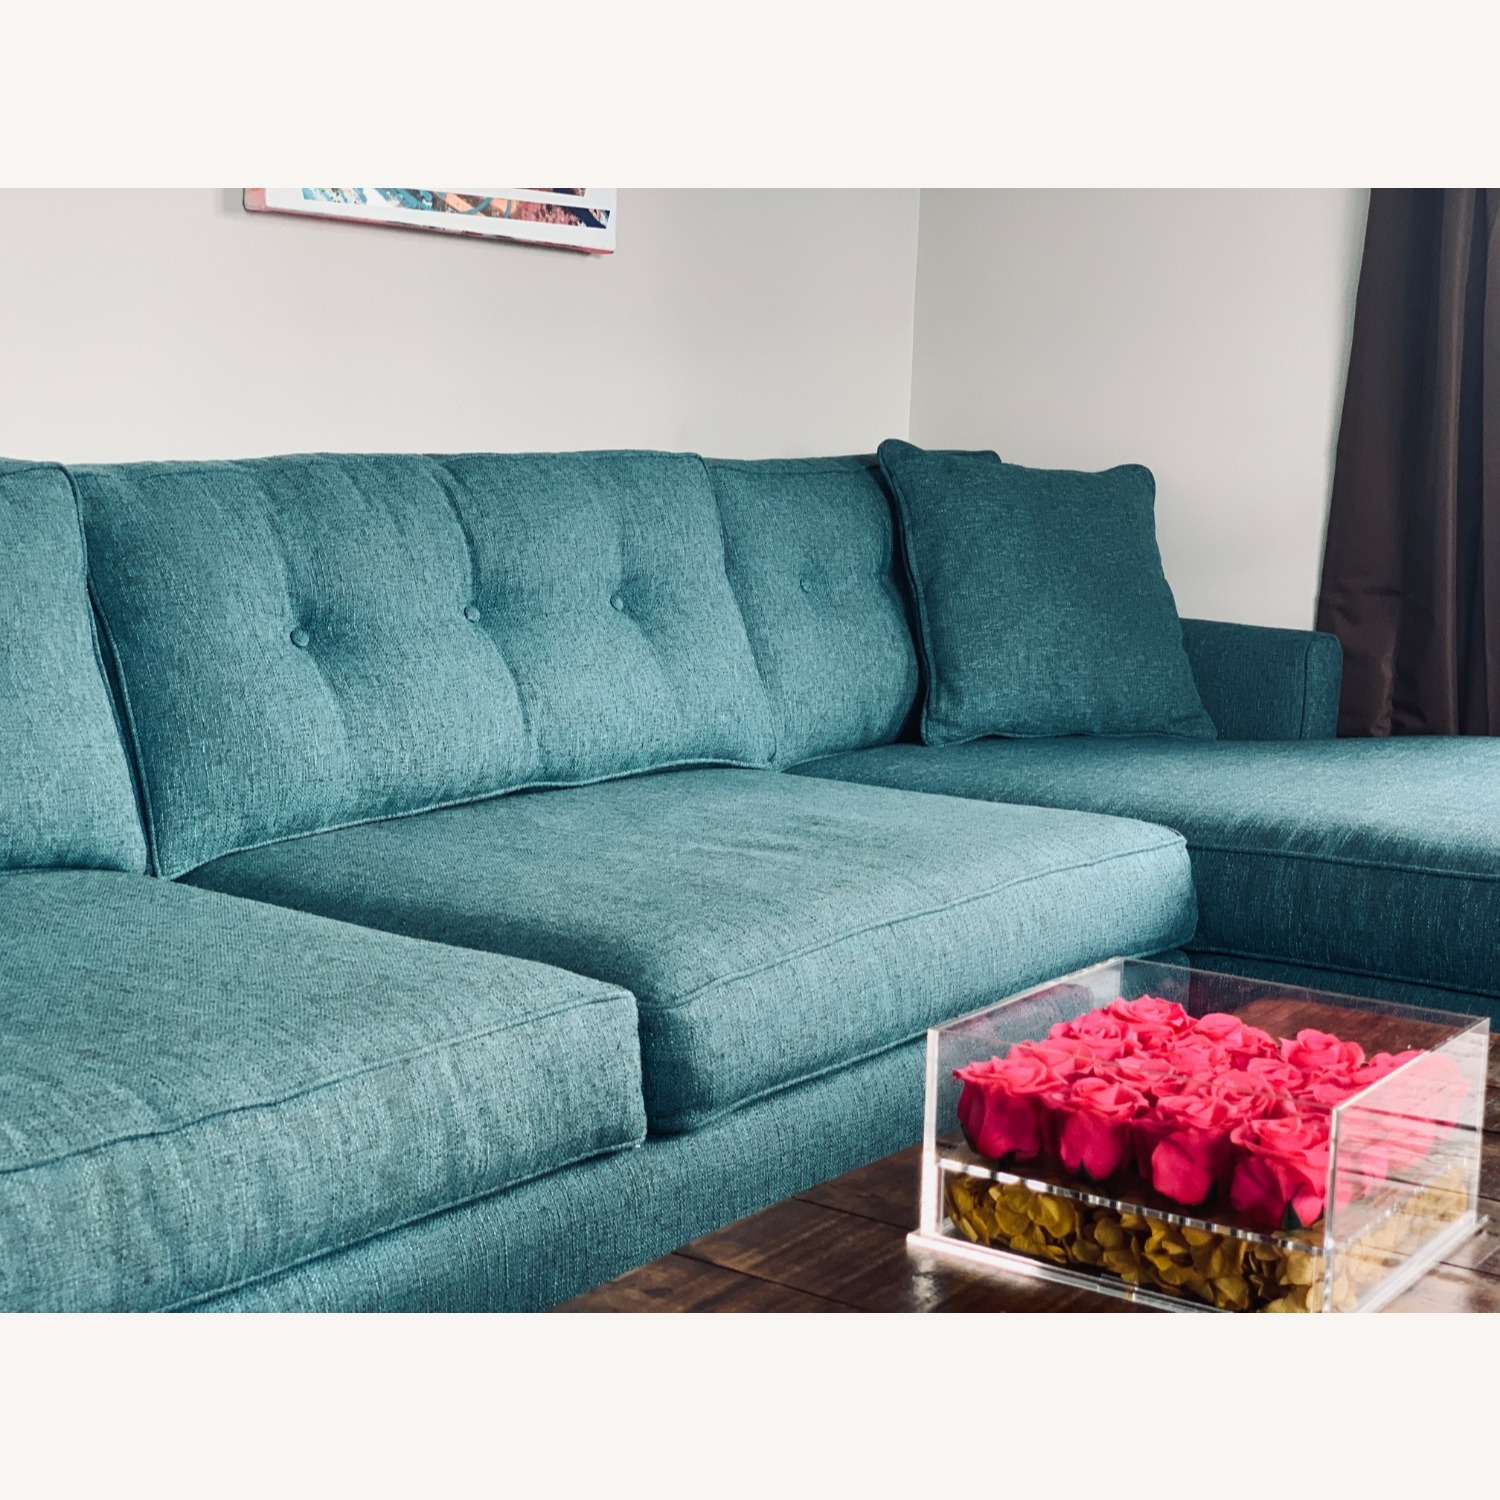 Trendy 2-Piece Sectional Sofa - image-2